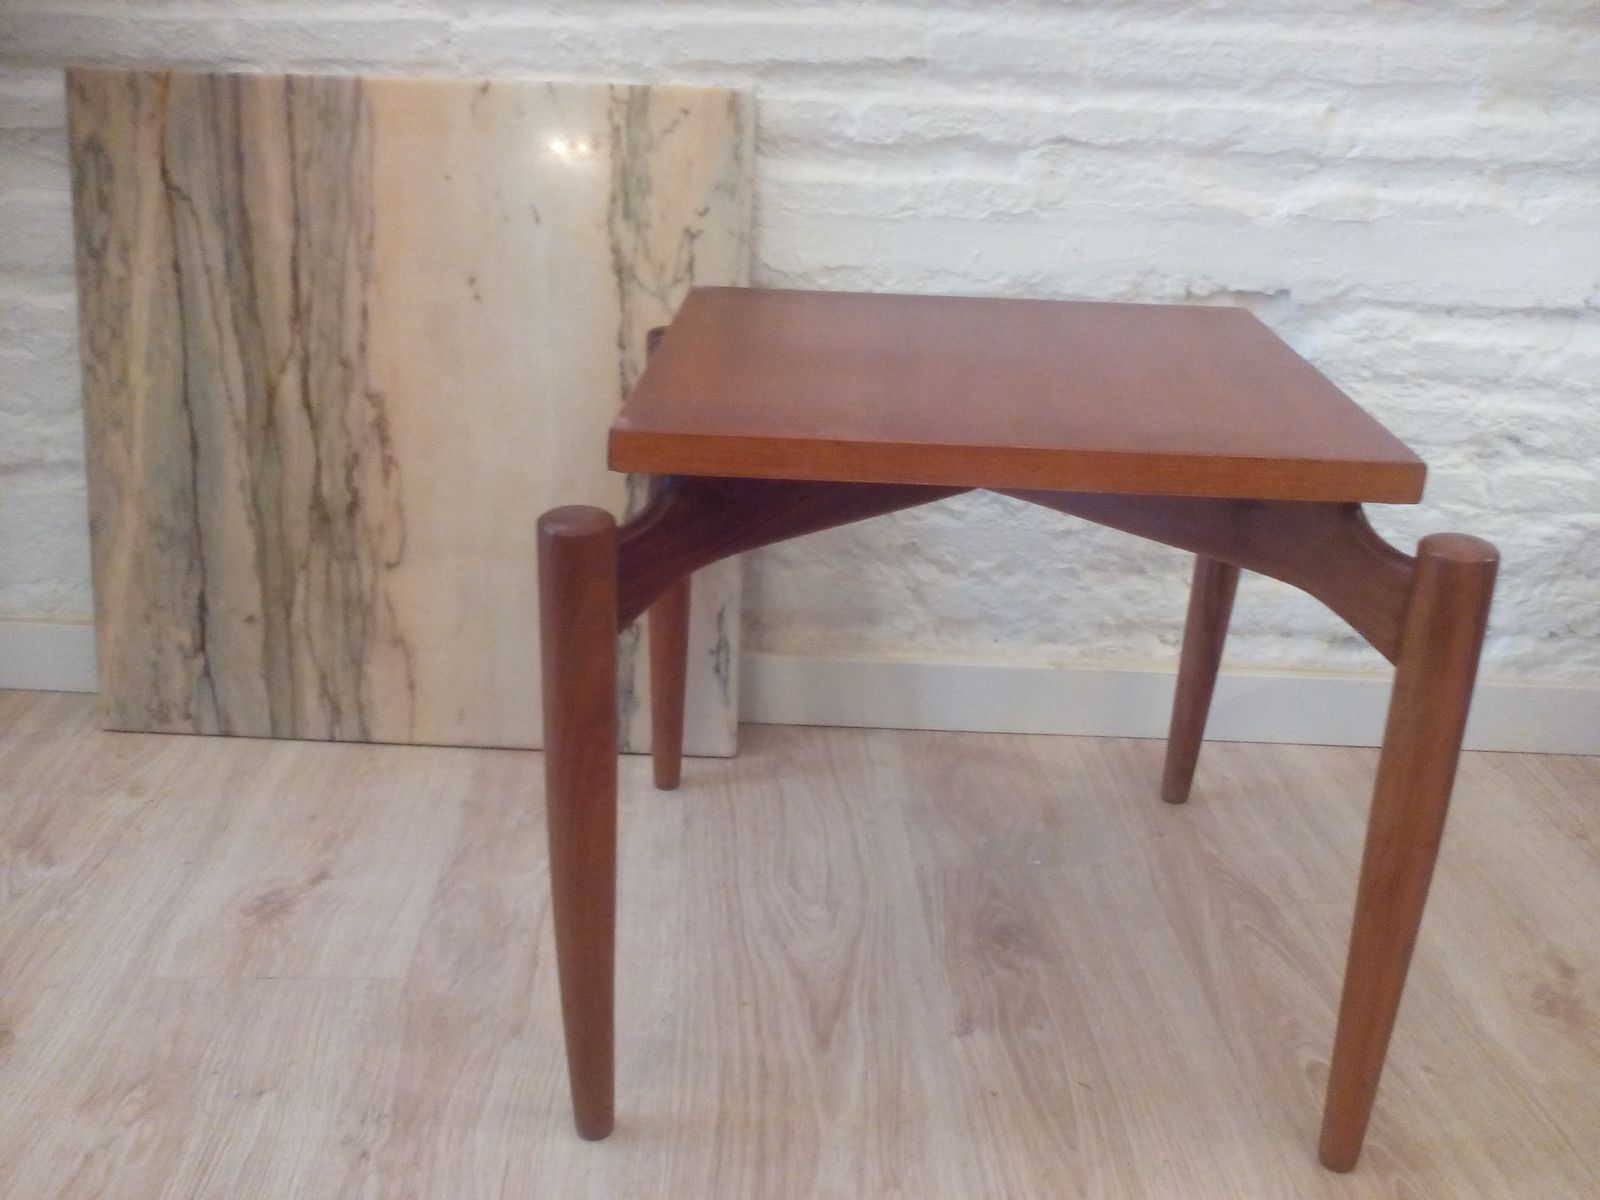 Coffee Table by Greta Grossman 1960s for sale at Pamono